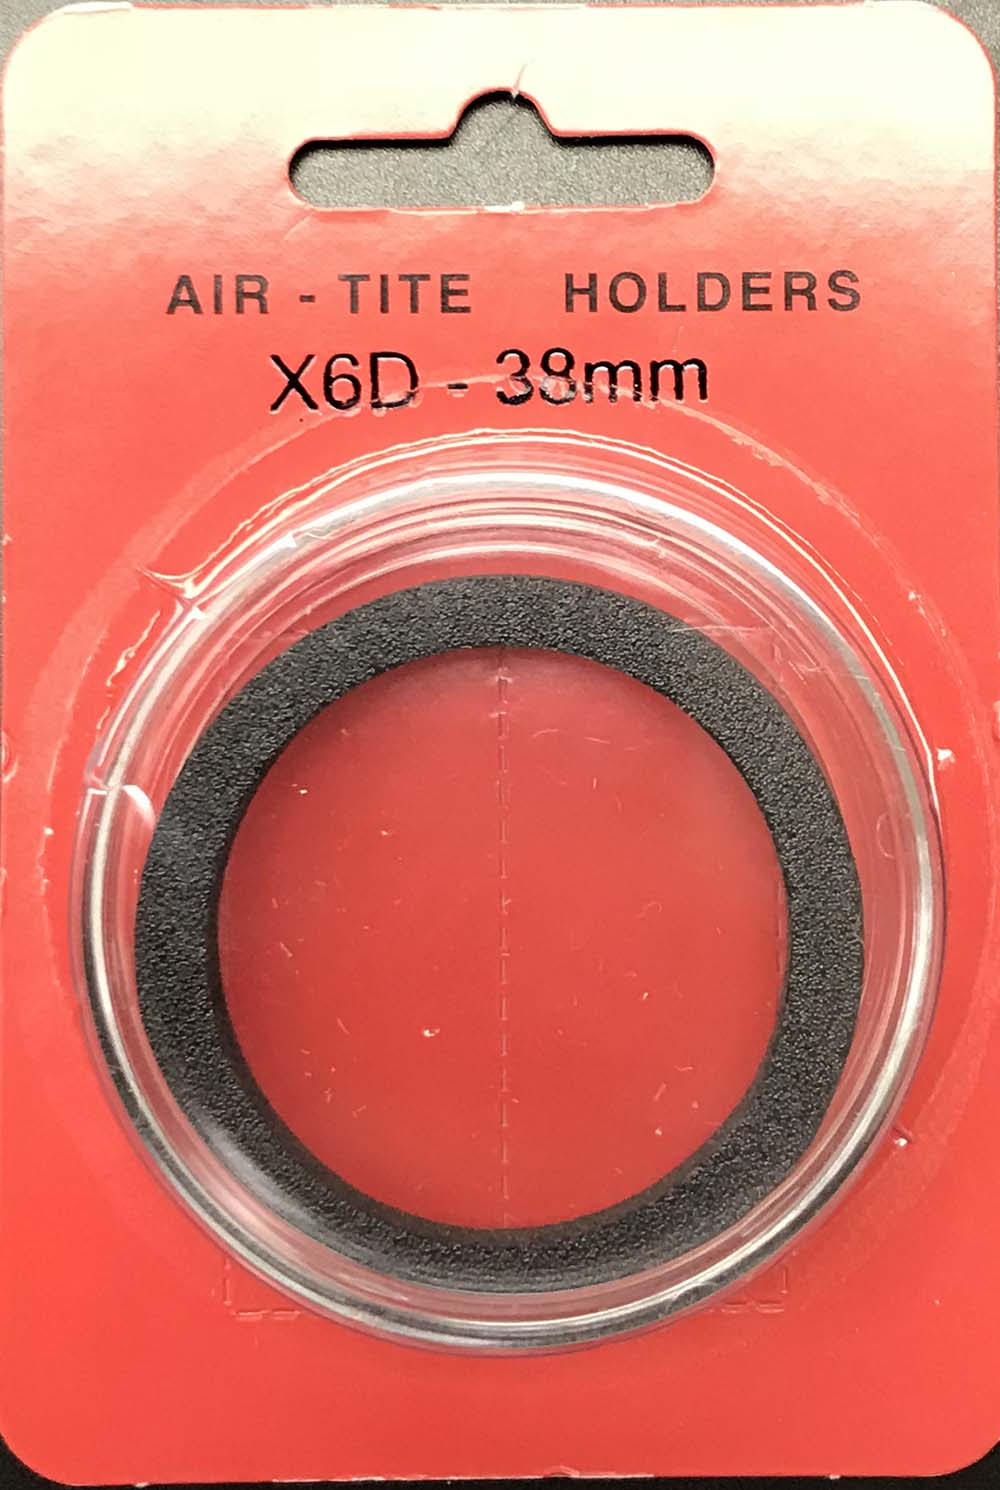 2 LARGE DOLLARS 38mm DIRECT FIT AIR-TITE COIN HOLDERS FITS U.S